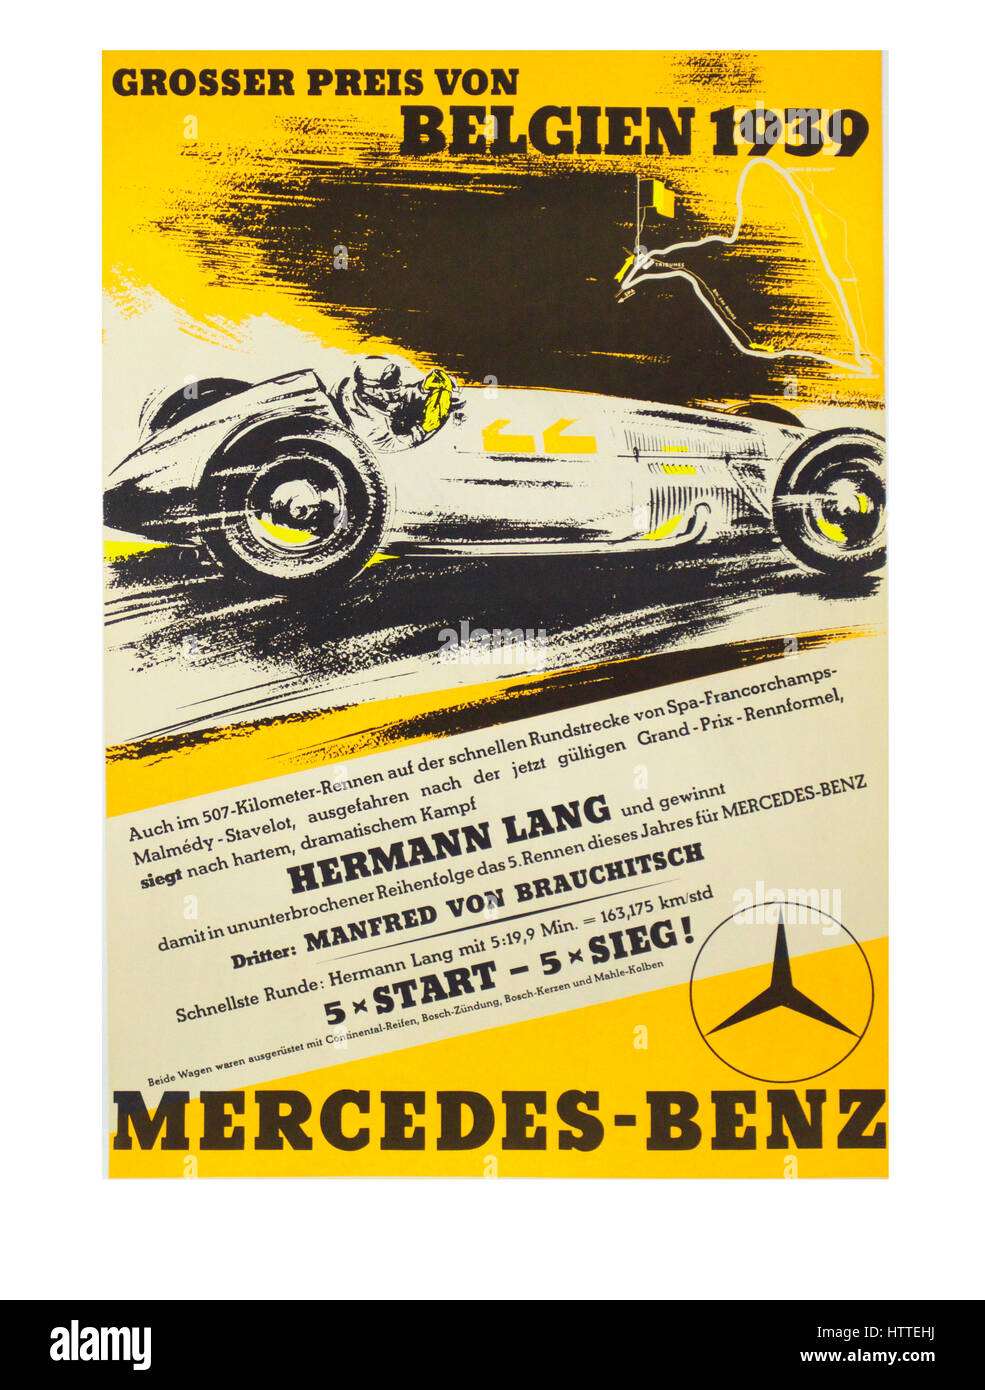 Mercedes 1939 Vintage retro motor racing 1939 Belgium GP poster featuring Silver Arrow Mercedes-Benz Stock Photo